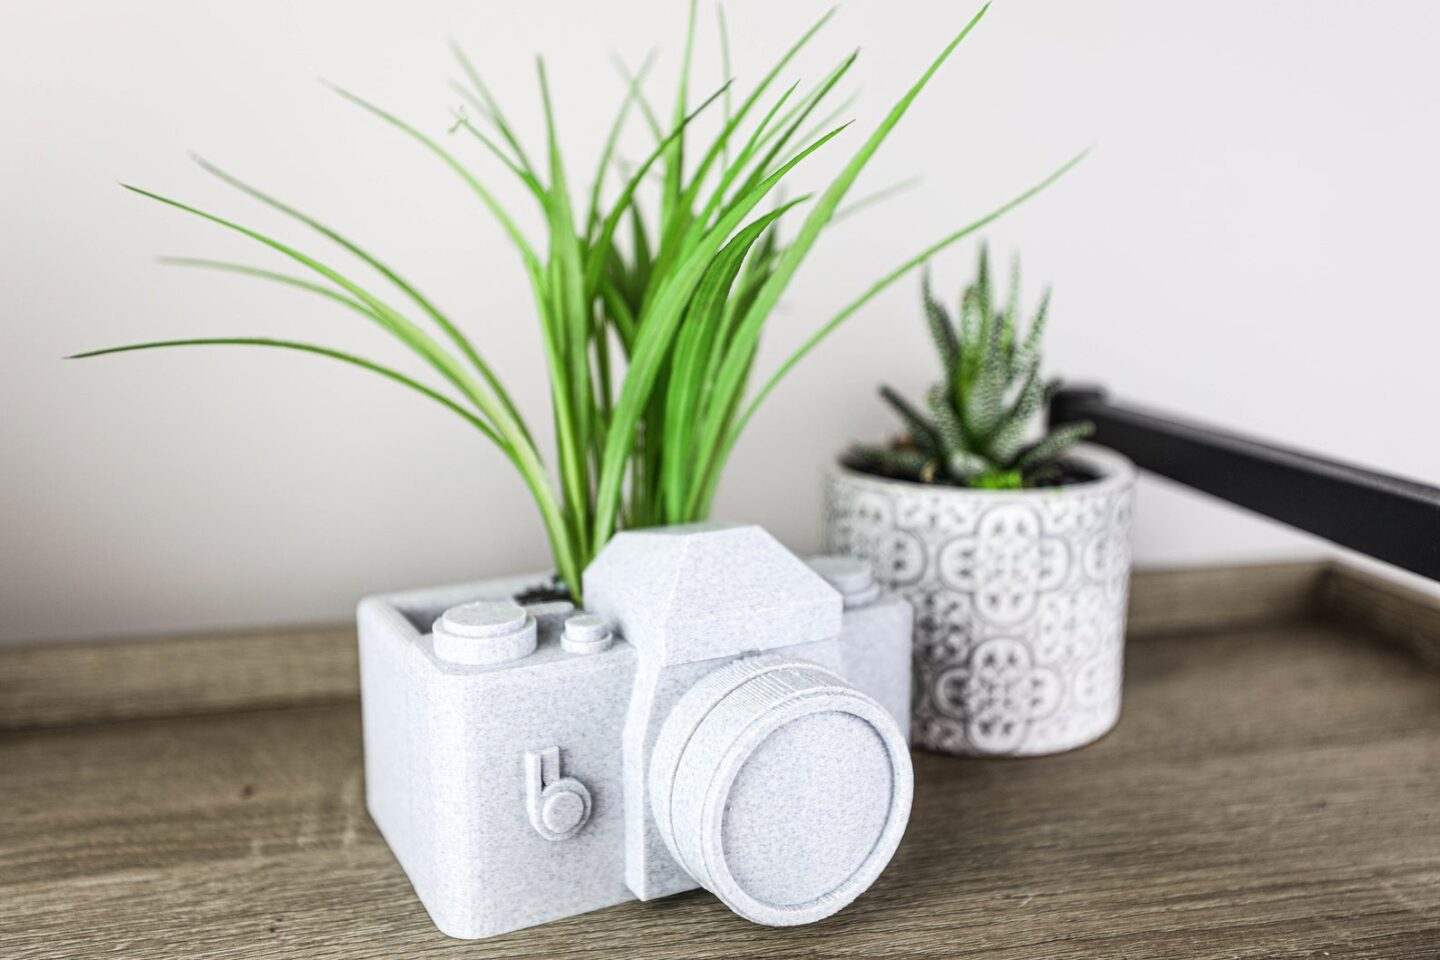 Small camera planter in granite style material from Etsy.